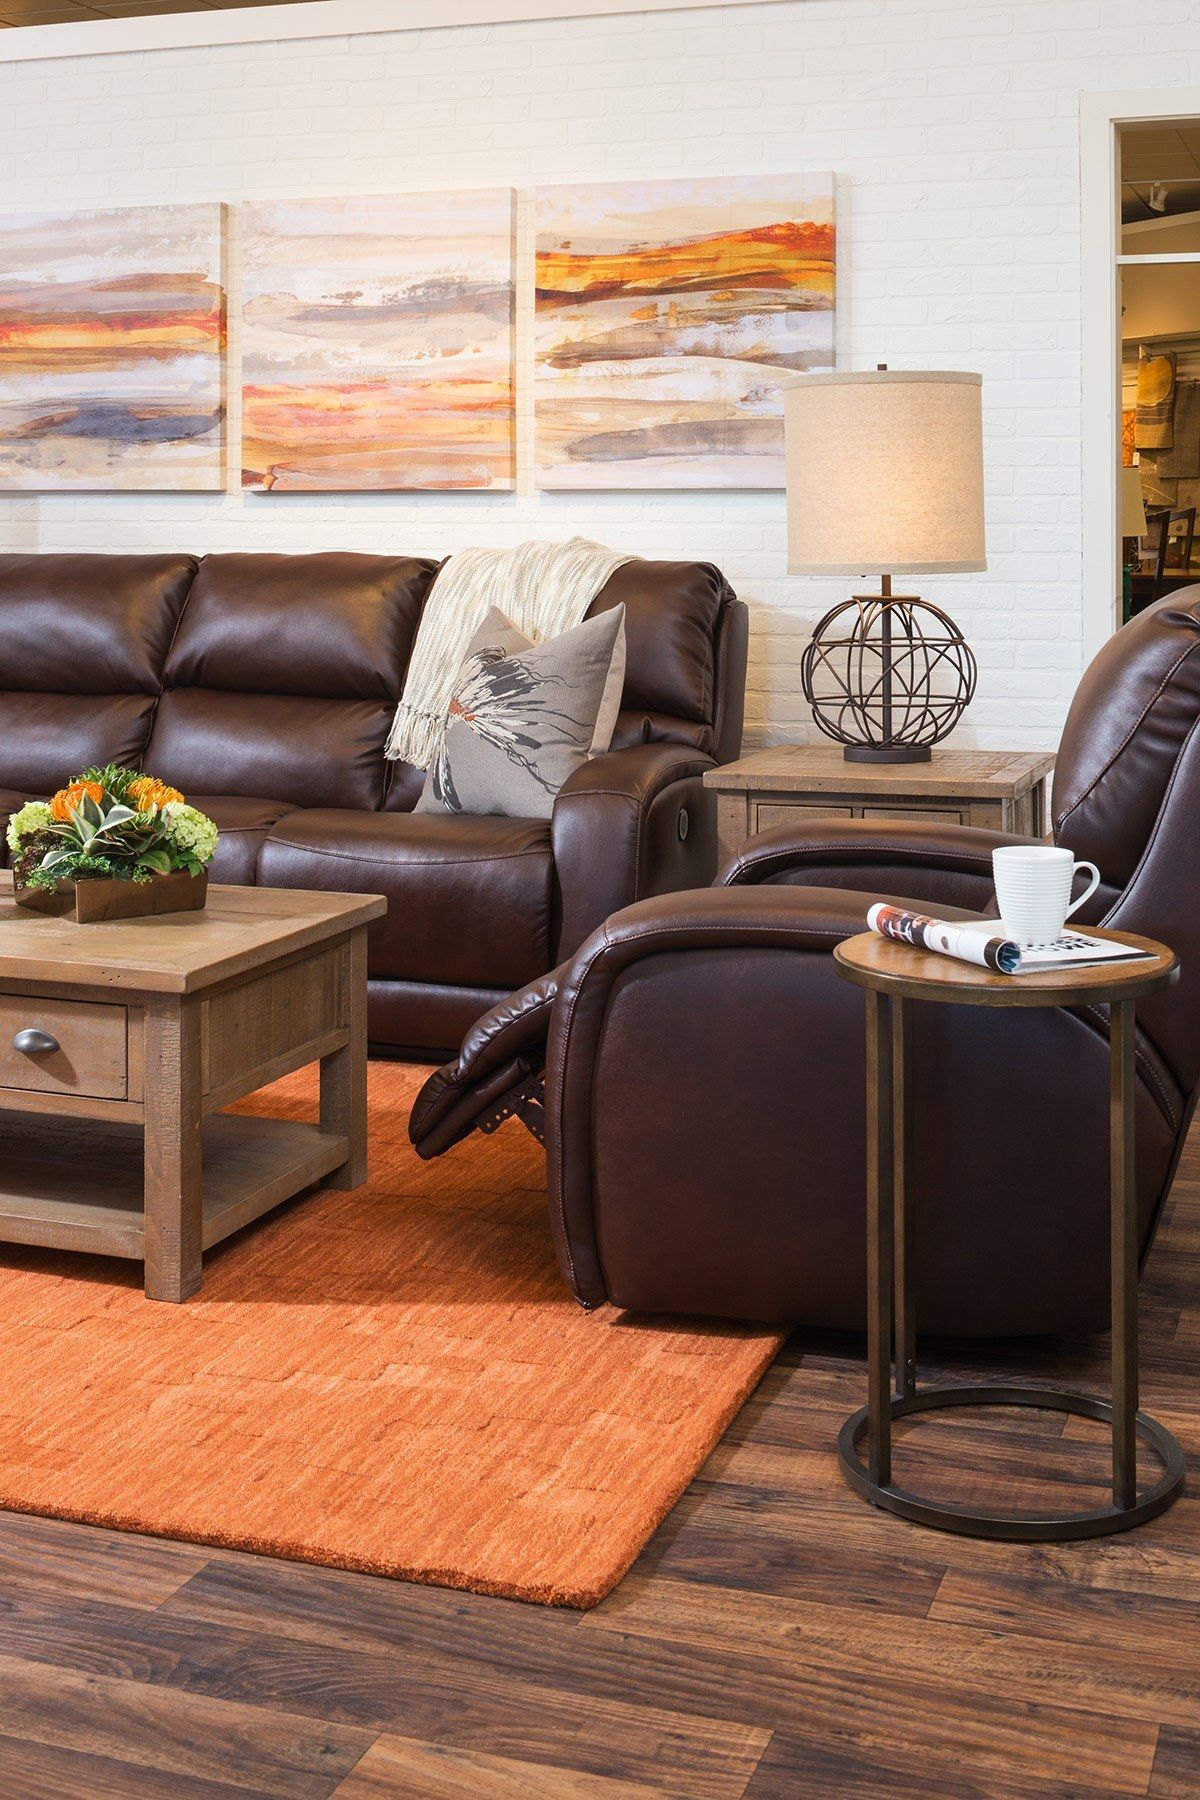 Decorating With Brown Leather Furniture (Tips for a ...